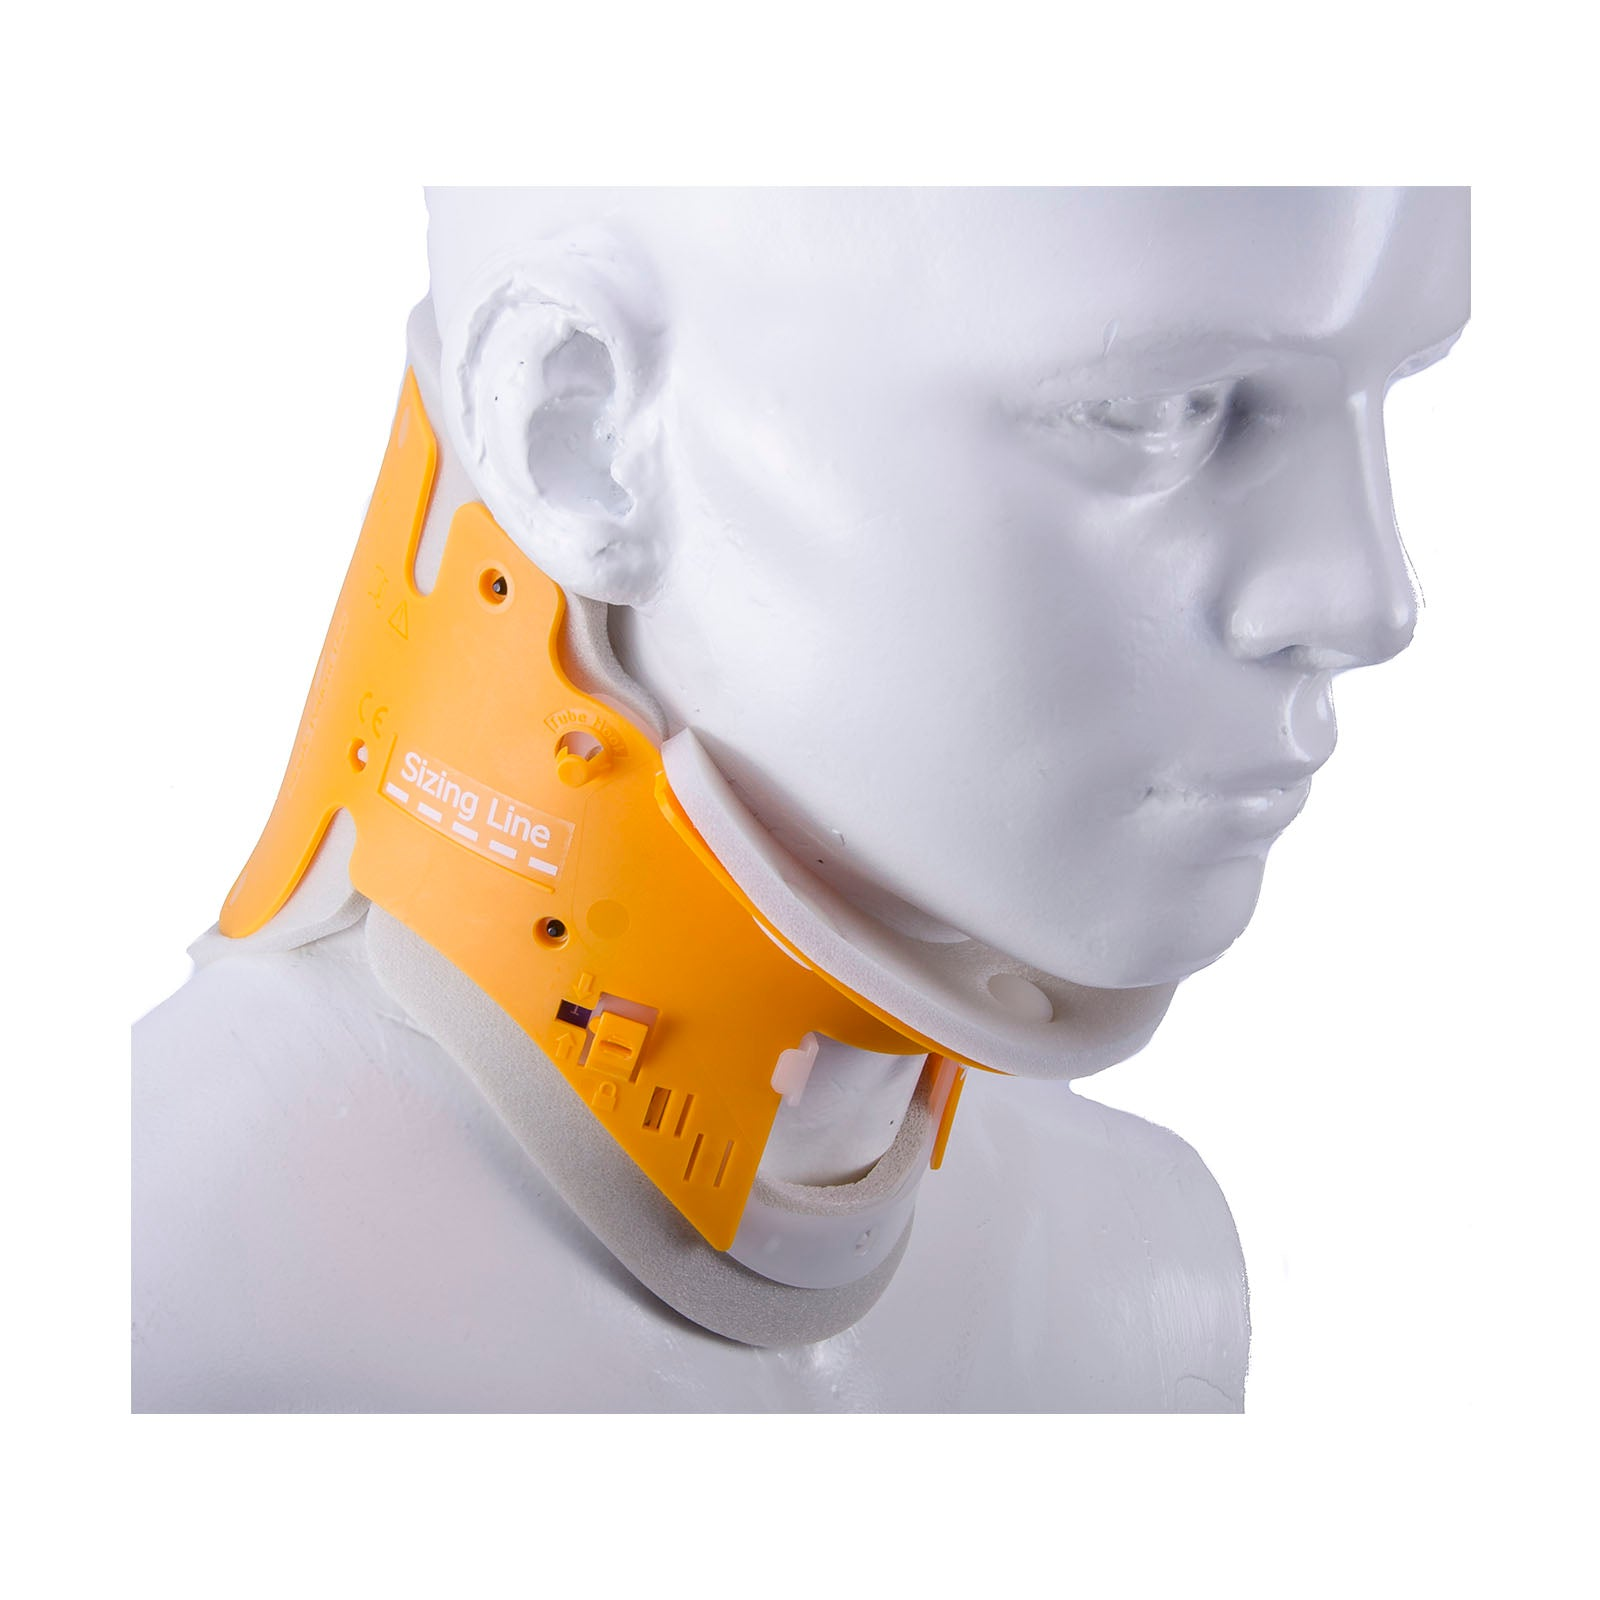 COLLARIN AJUSTABLE PEDIA CURAPLEX LM-207